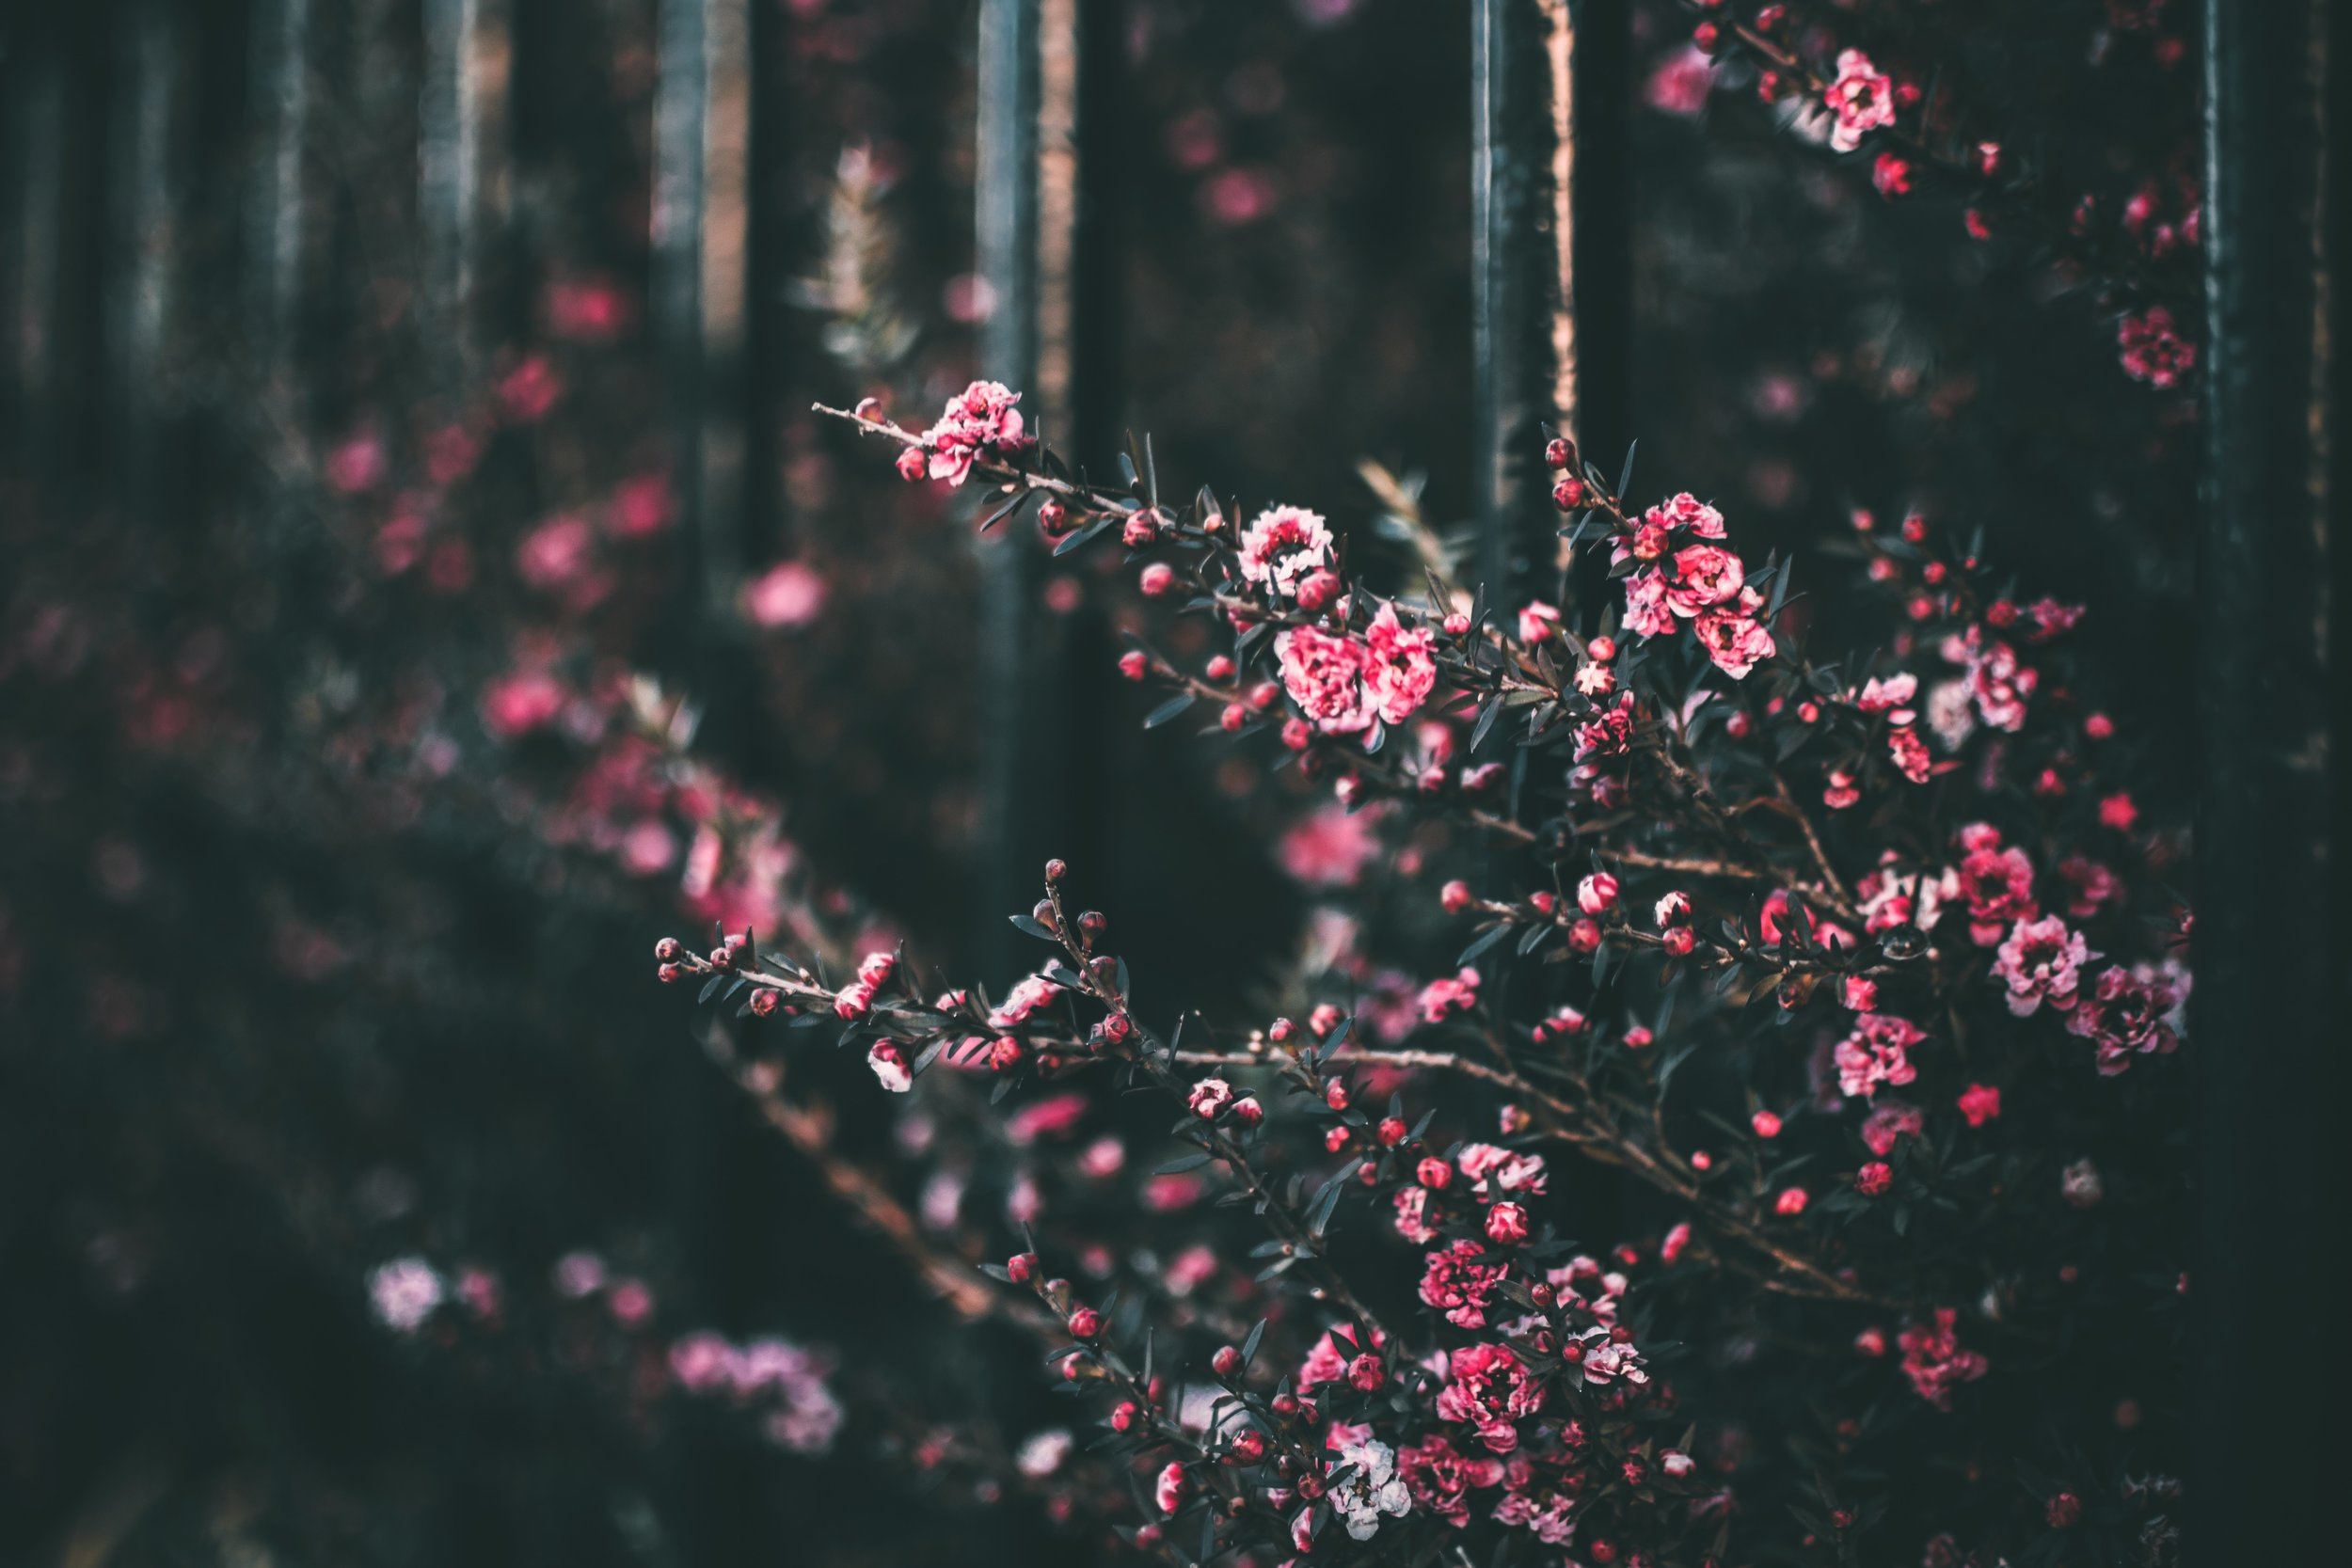 blooming-blossom-blurred-background-1182338.jpg